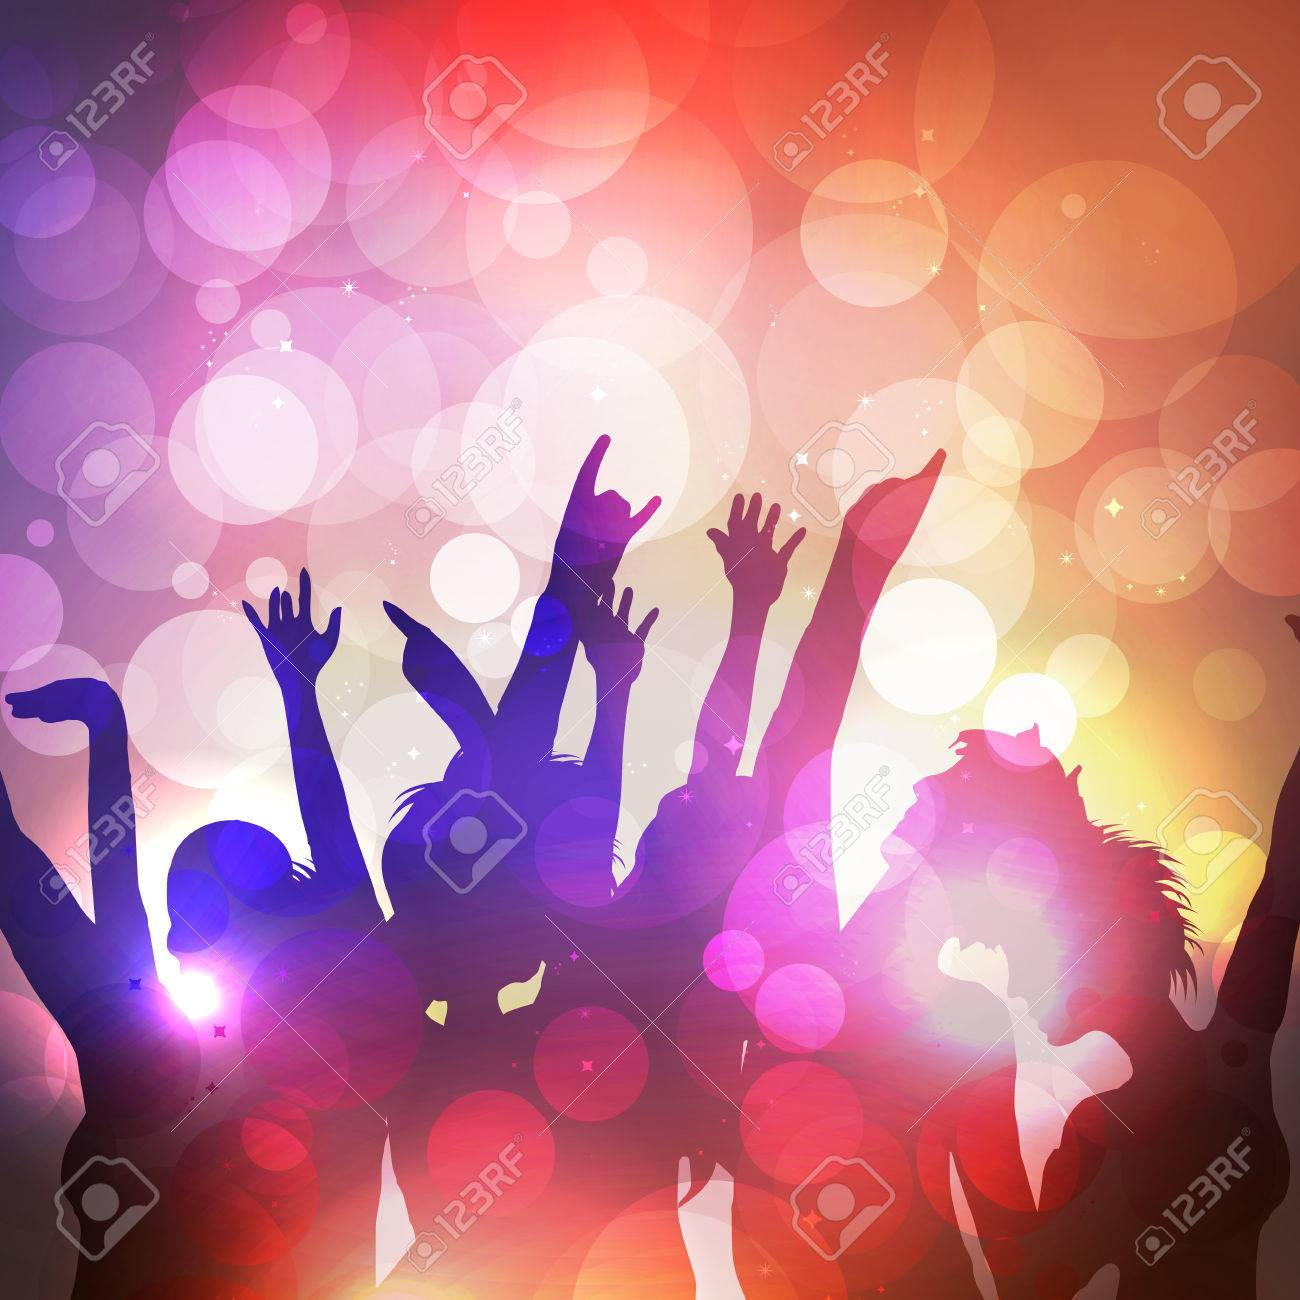 Silhouettes of Dancing People at Summer Party - Vector Illustration - 31050429